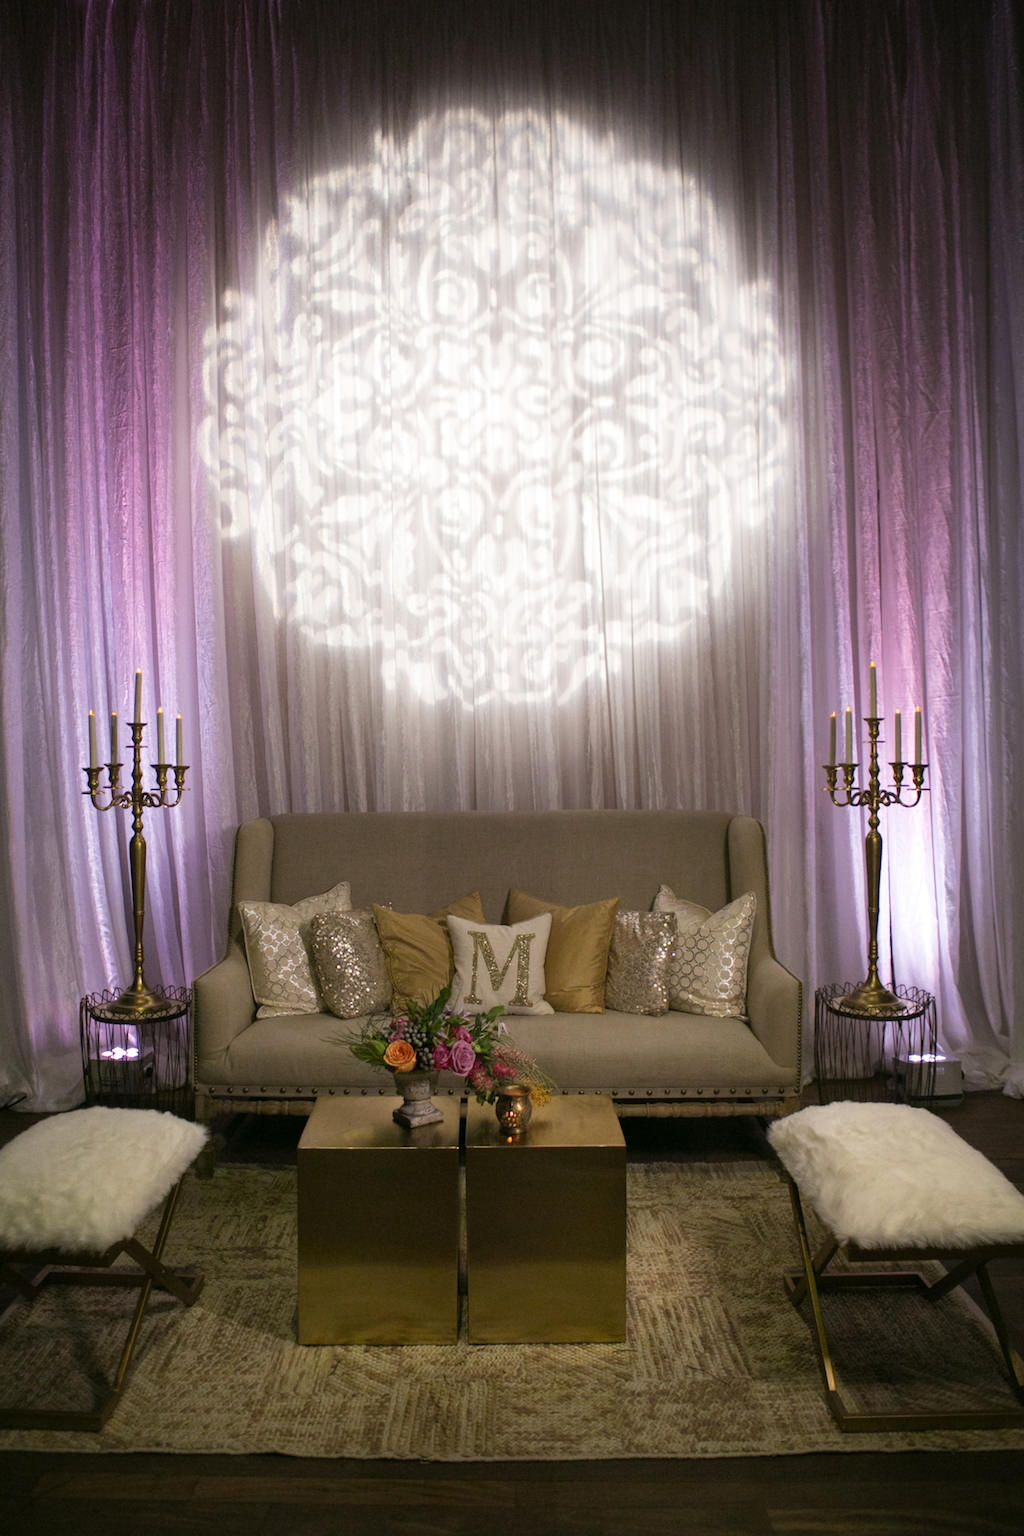 Stylish Wedding Lounge Decor with Modern Furnishings, Tropical Florals, and Purple Uplighting | Luxurious St. Pete Wedding Venue NOVA 535